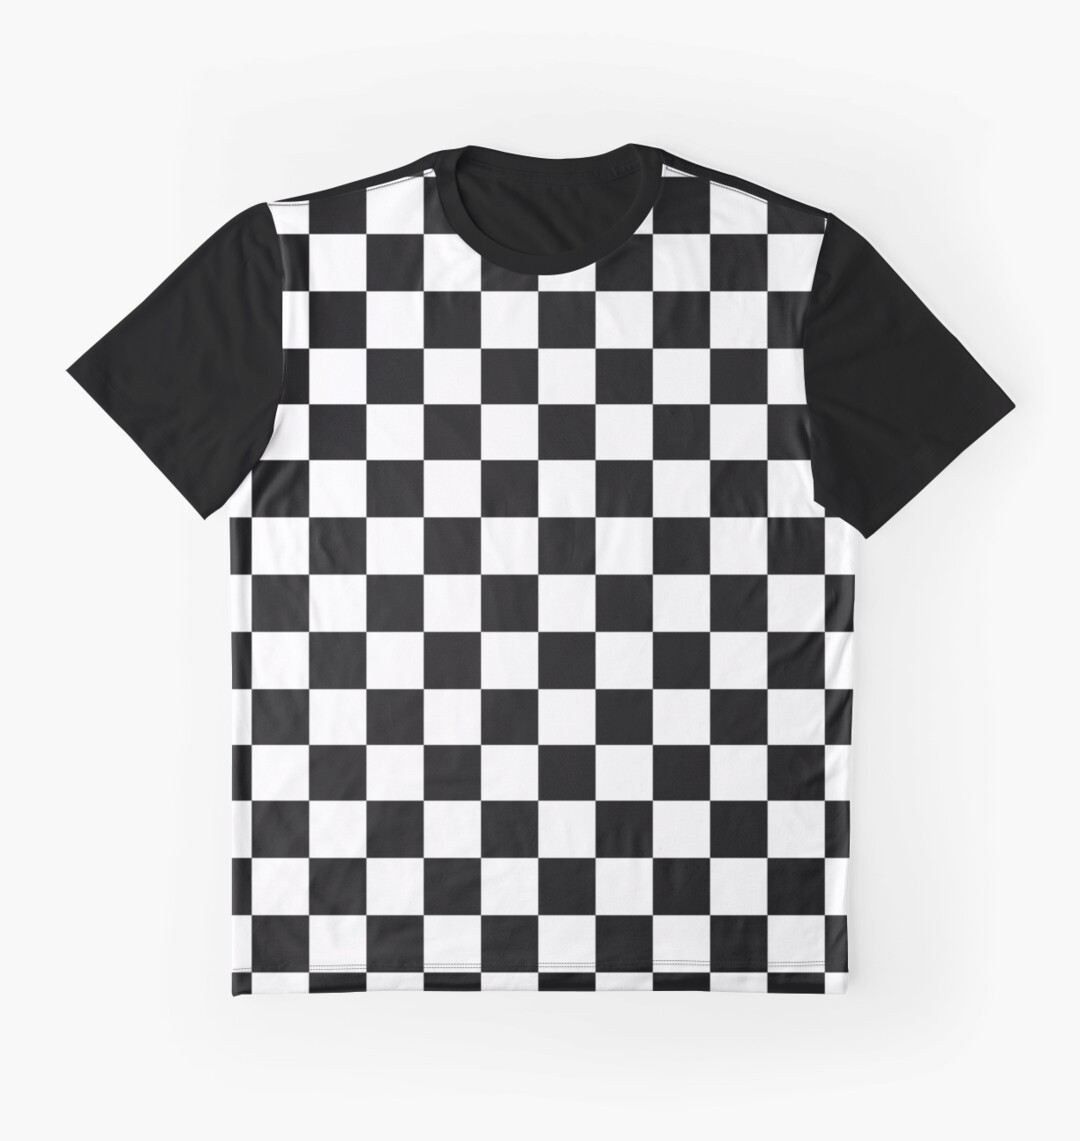 Design t shirt motor - Checkered Flag Chequered Flag Motor Sport Checkerboard Pattern Win Winner Racing Cars Race Finish Line Black Graphic T Shirts